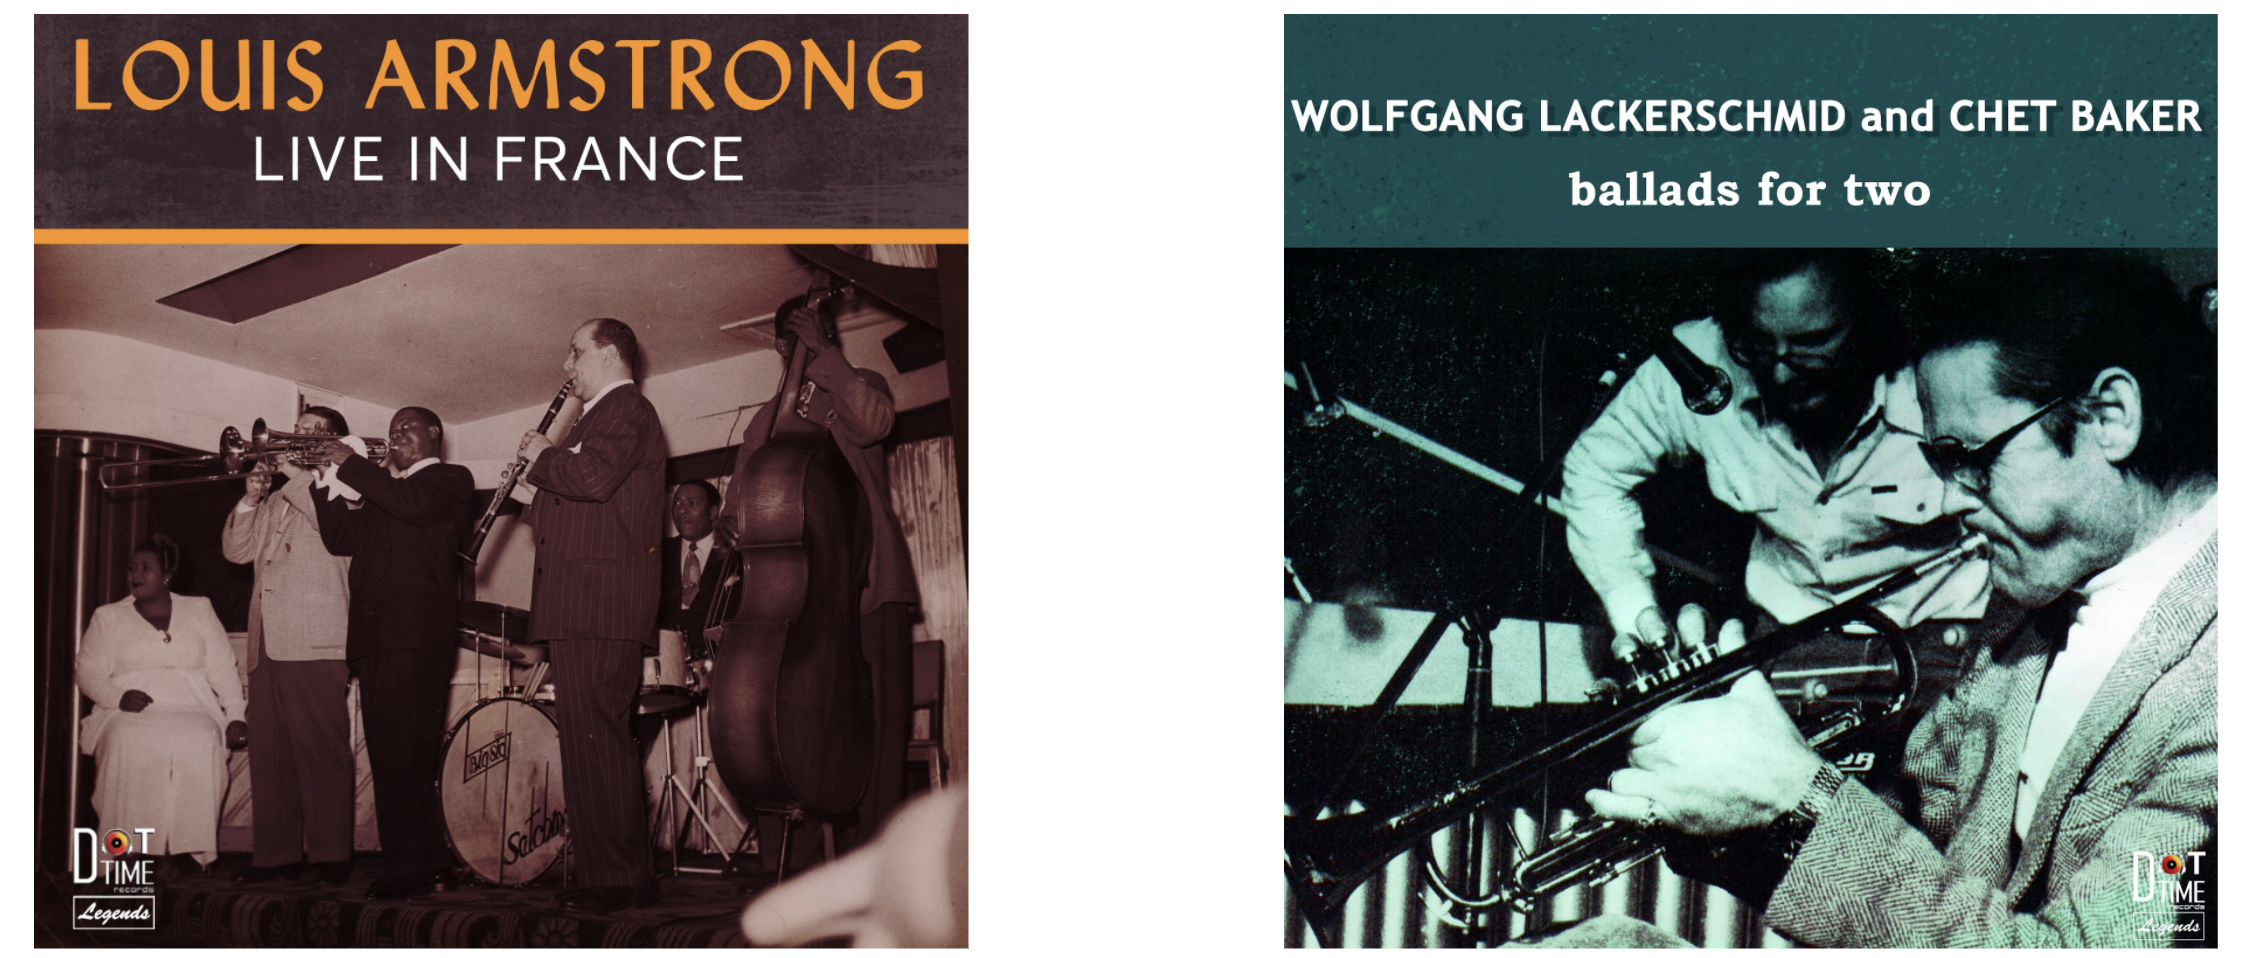 NEW VINYL FROM DOT TIME: Wolfgang Lackerschmid & Chet Baker and Louis Armstrong